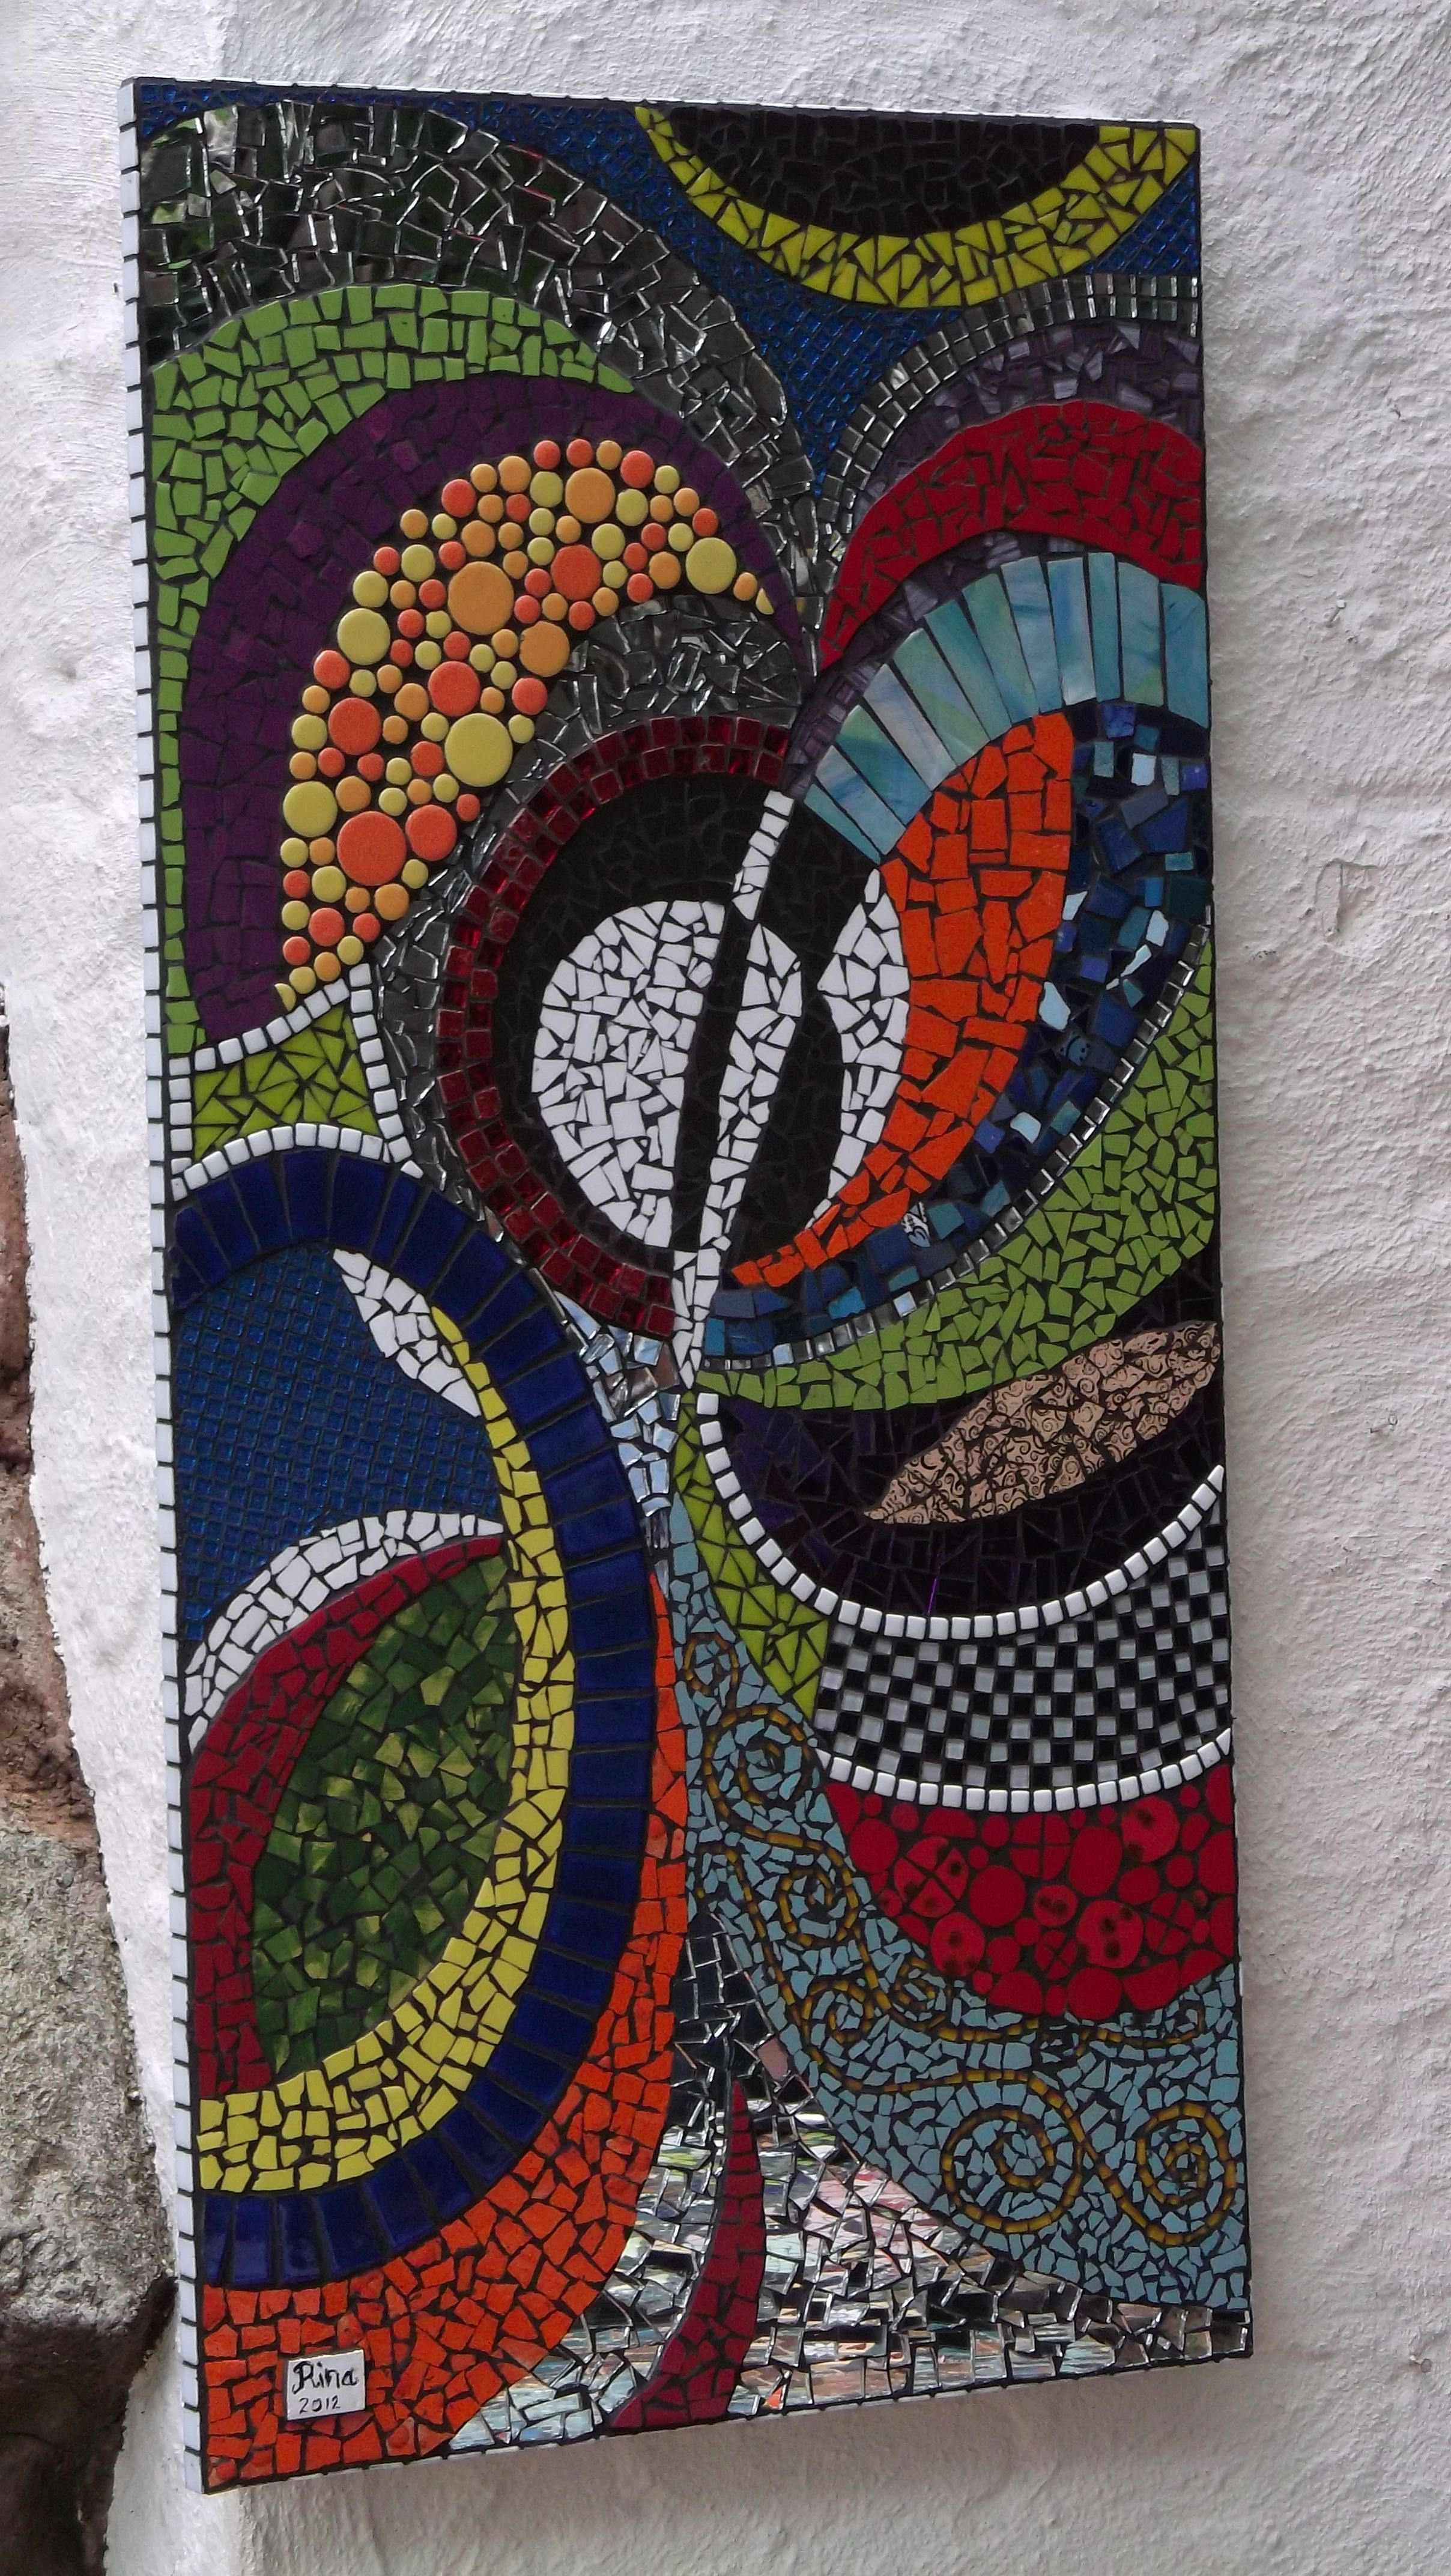 44+ Mosaic tiles craft kits information